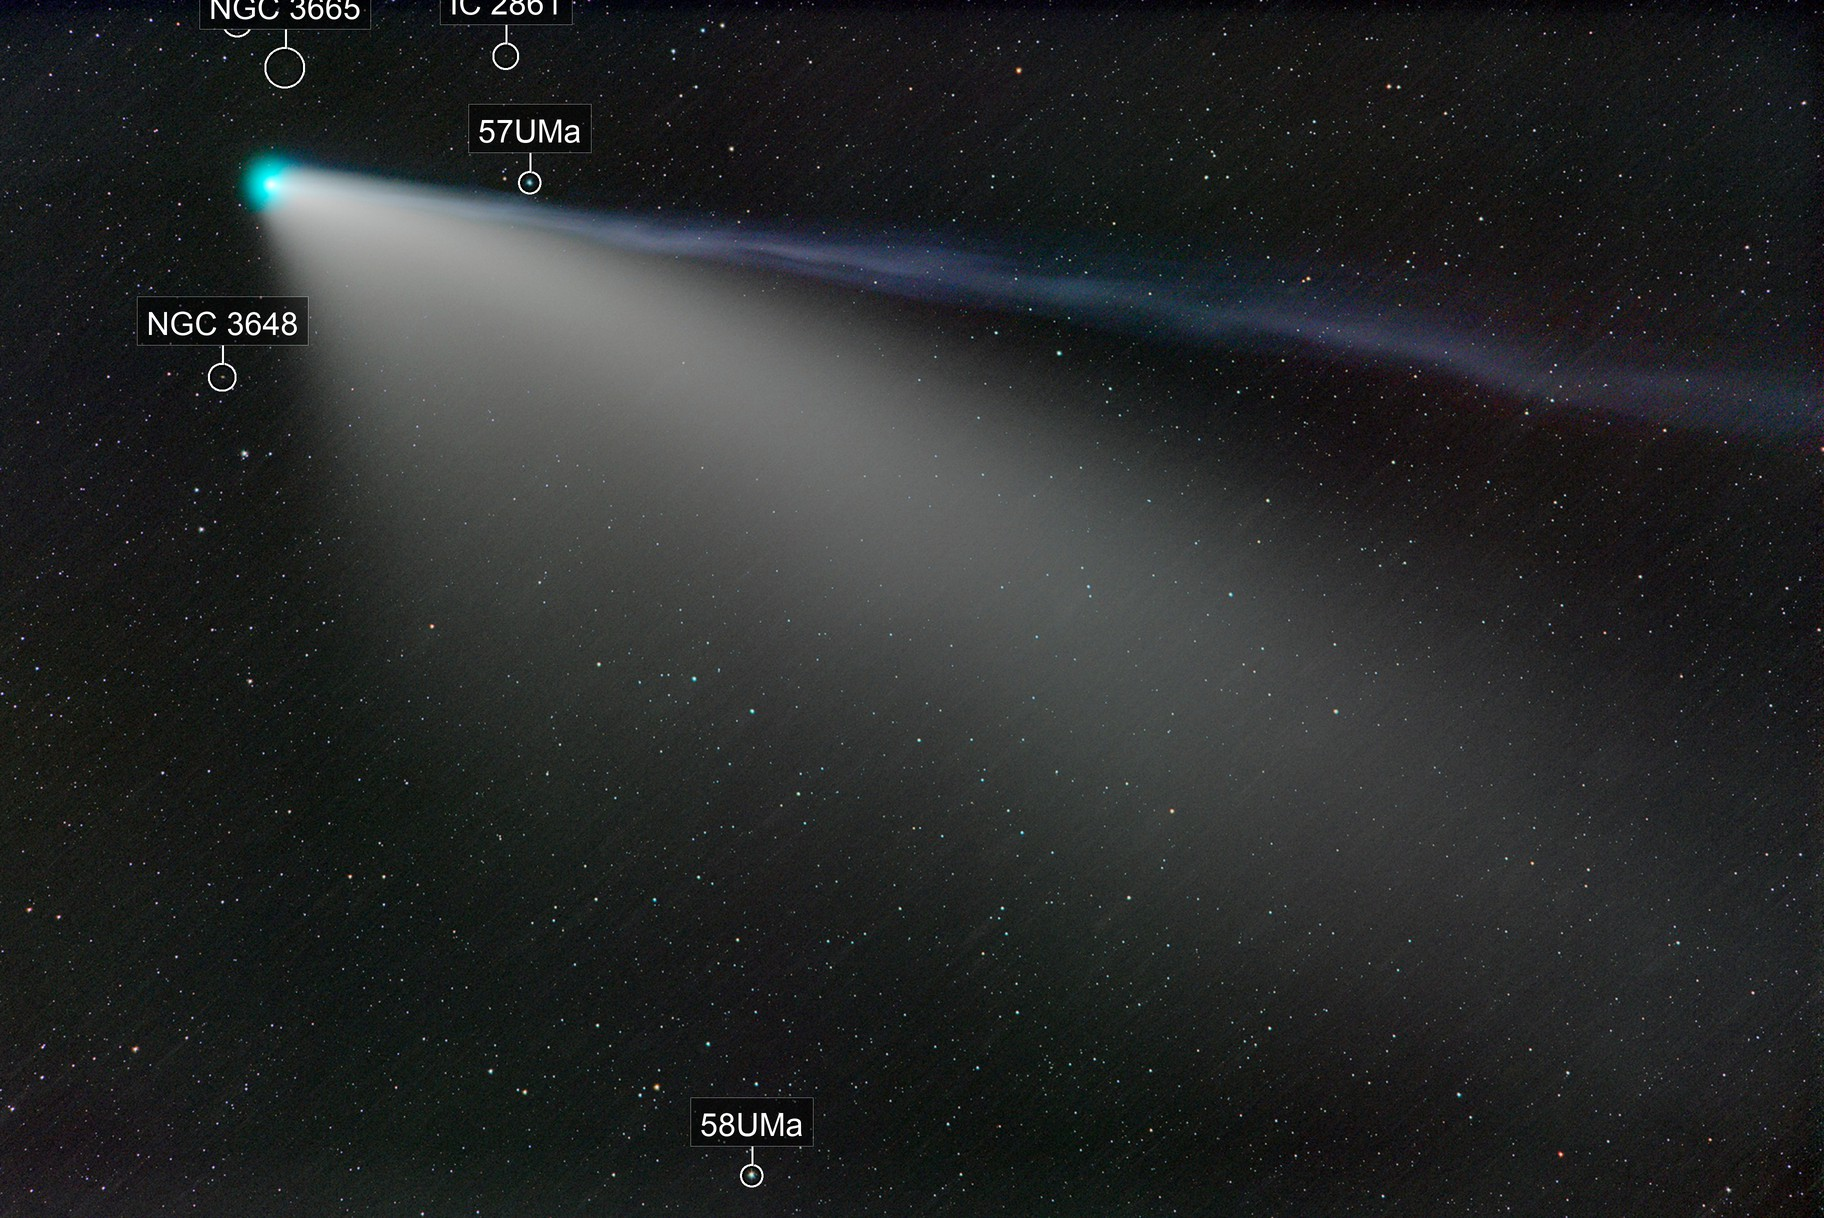 July 25 comet NEOWISE, a fading bloom